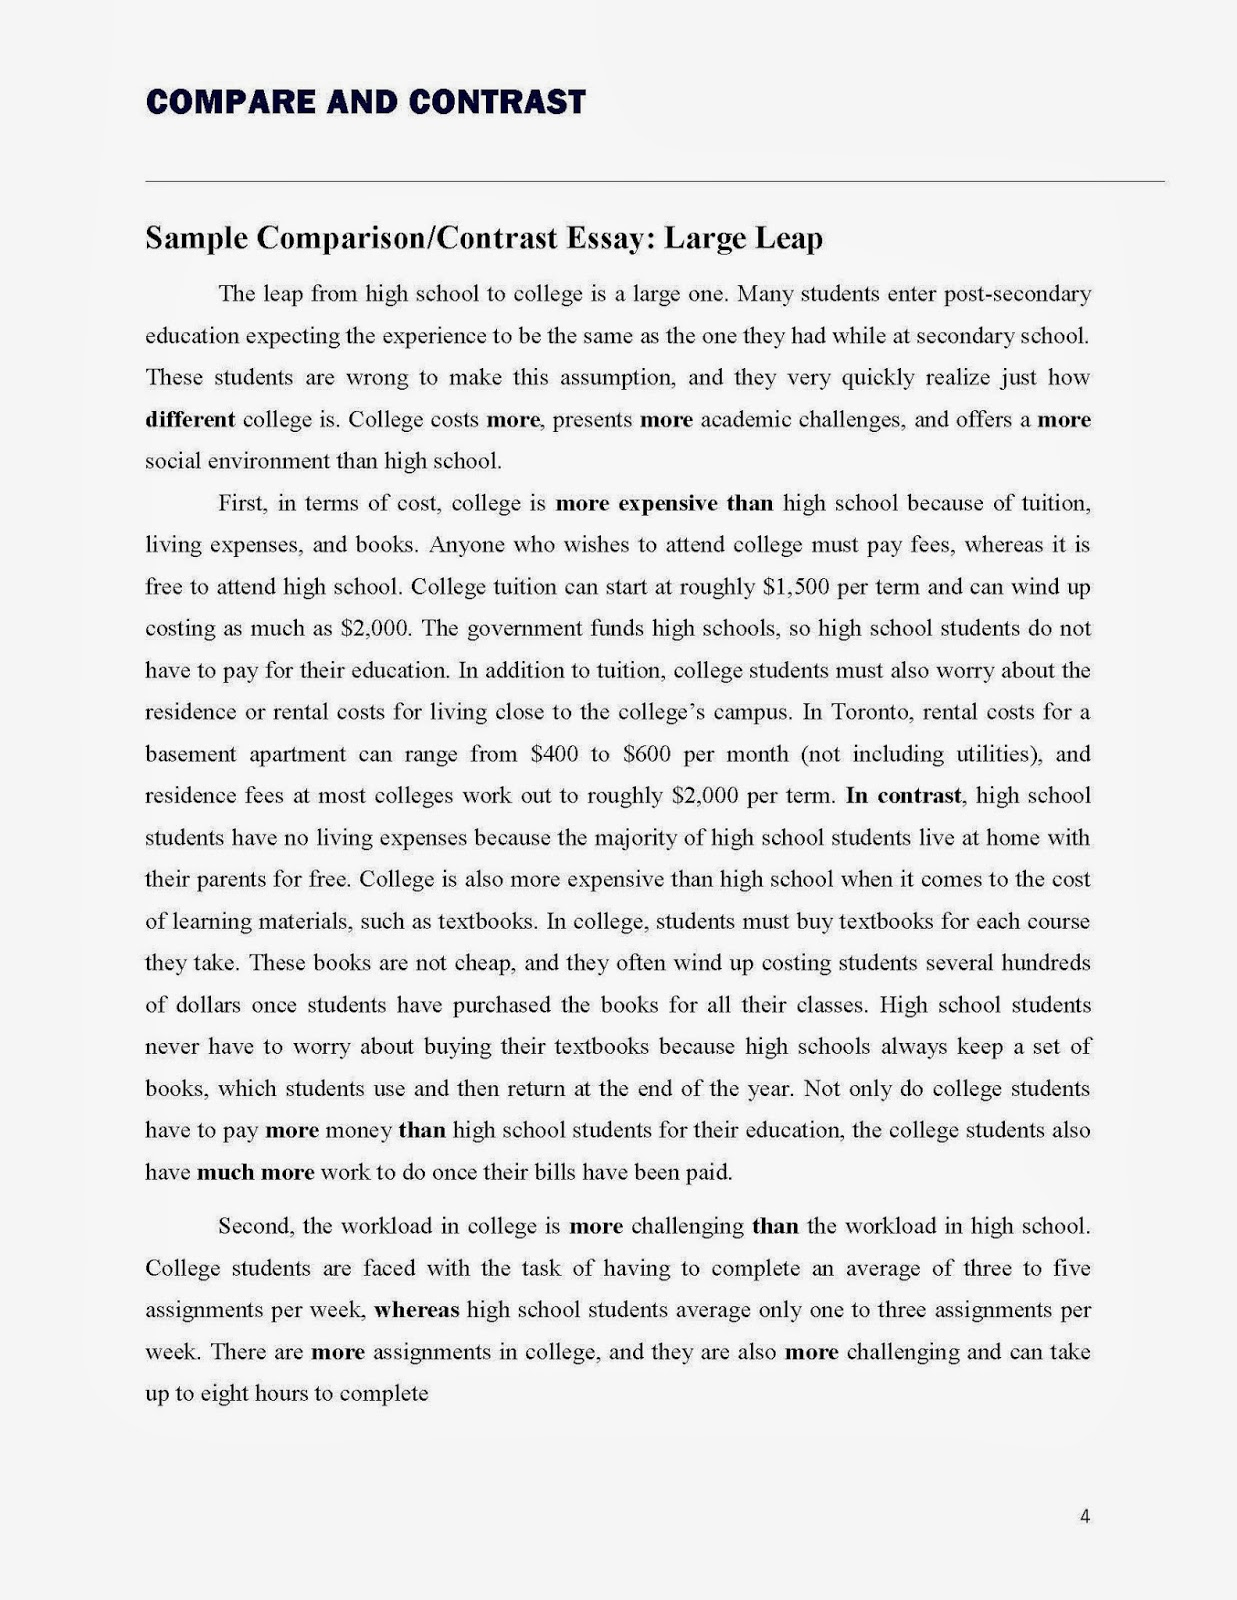 014 Compare20and20contrast20essay Page 4 Essay Example Funny Compare And Contrast Surprising Topics For College Full